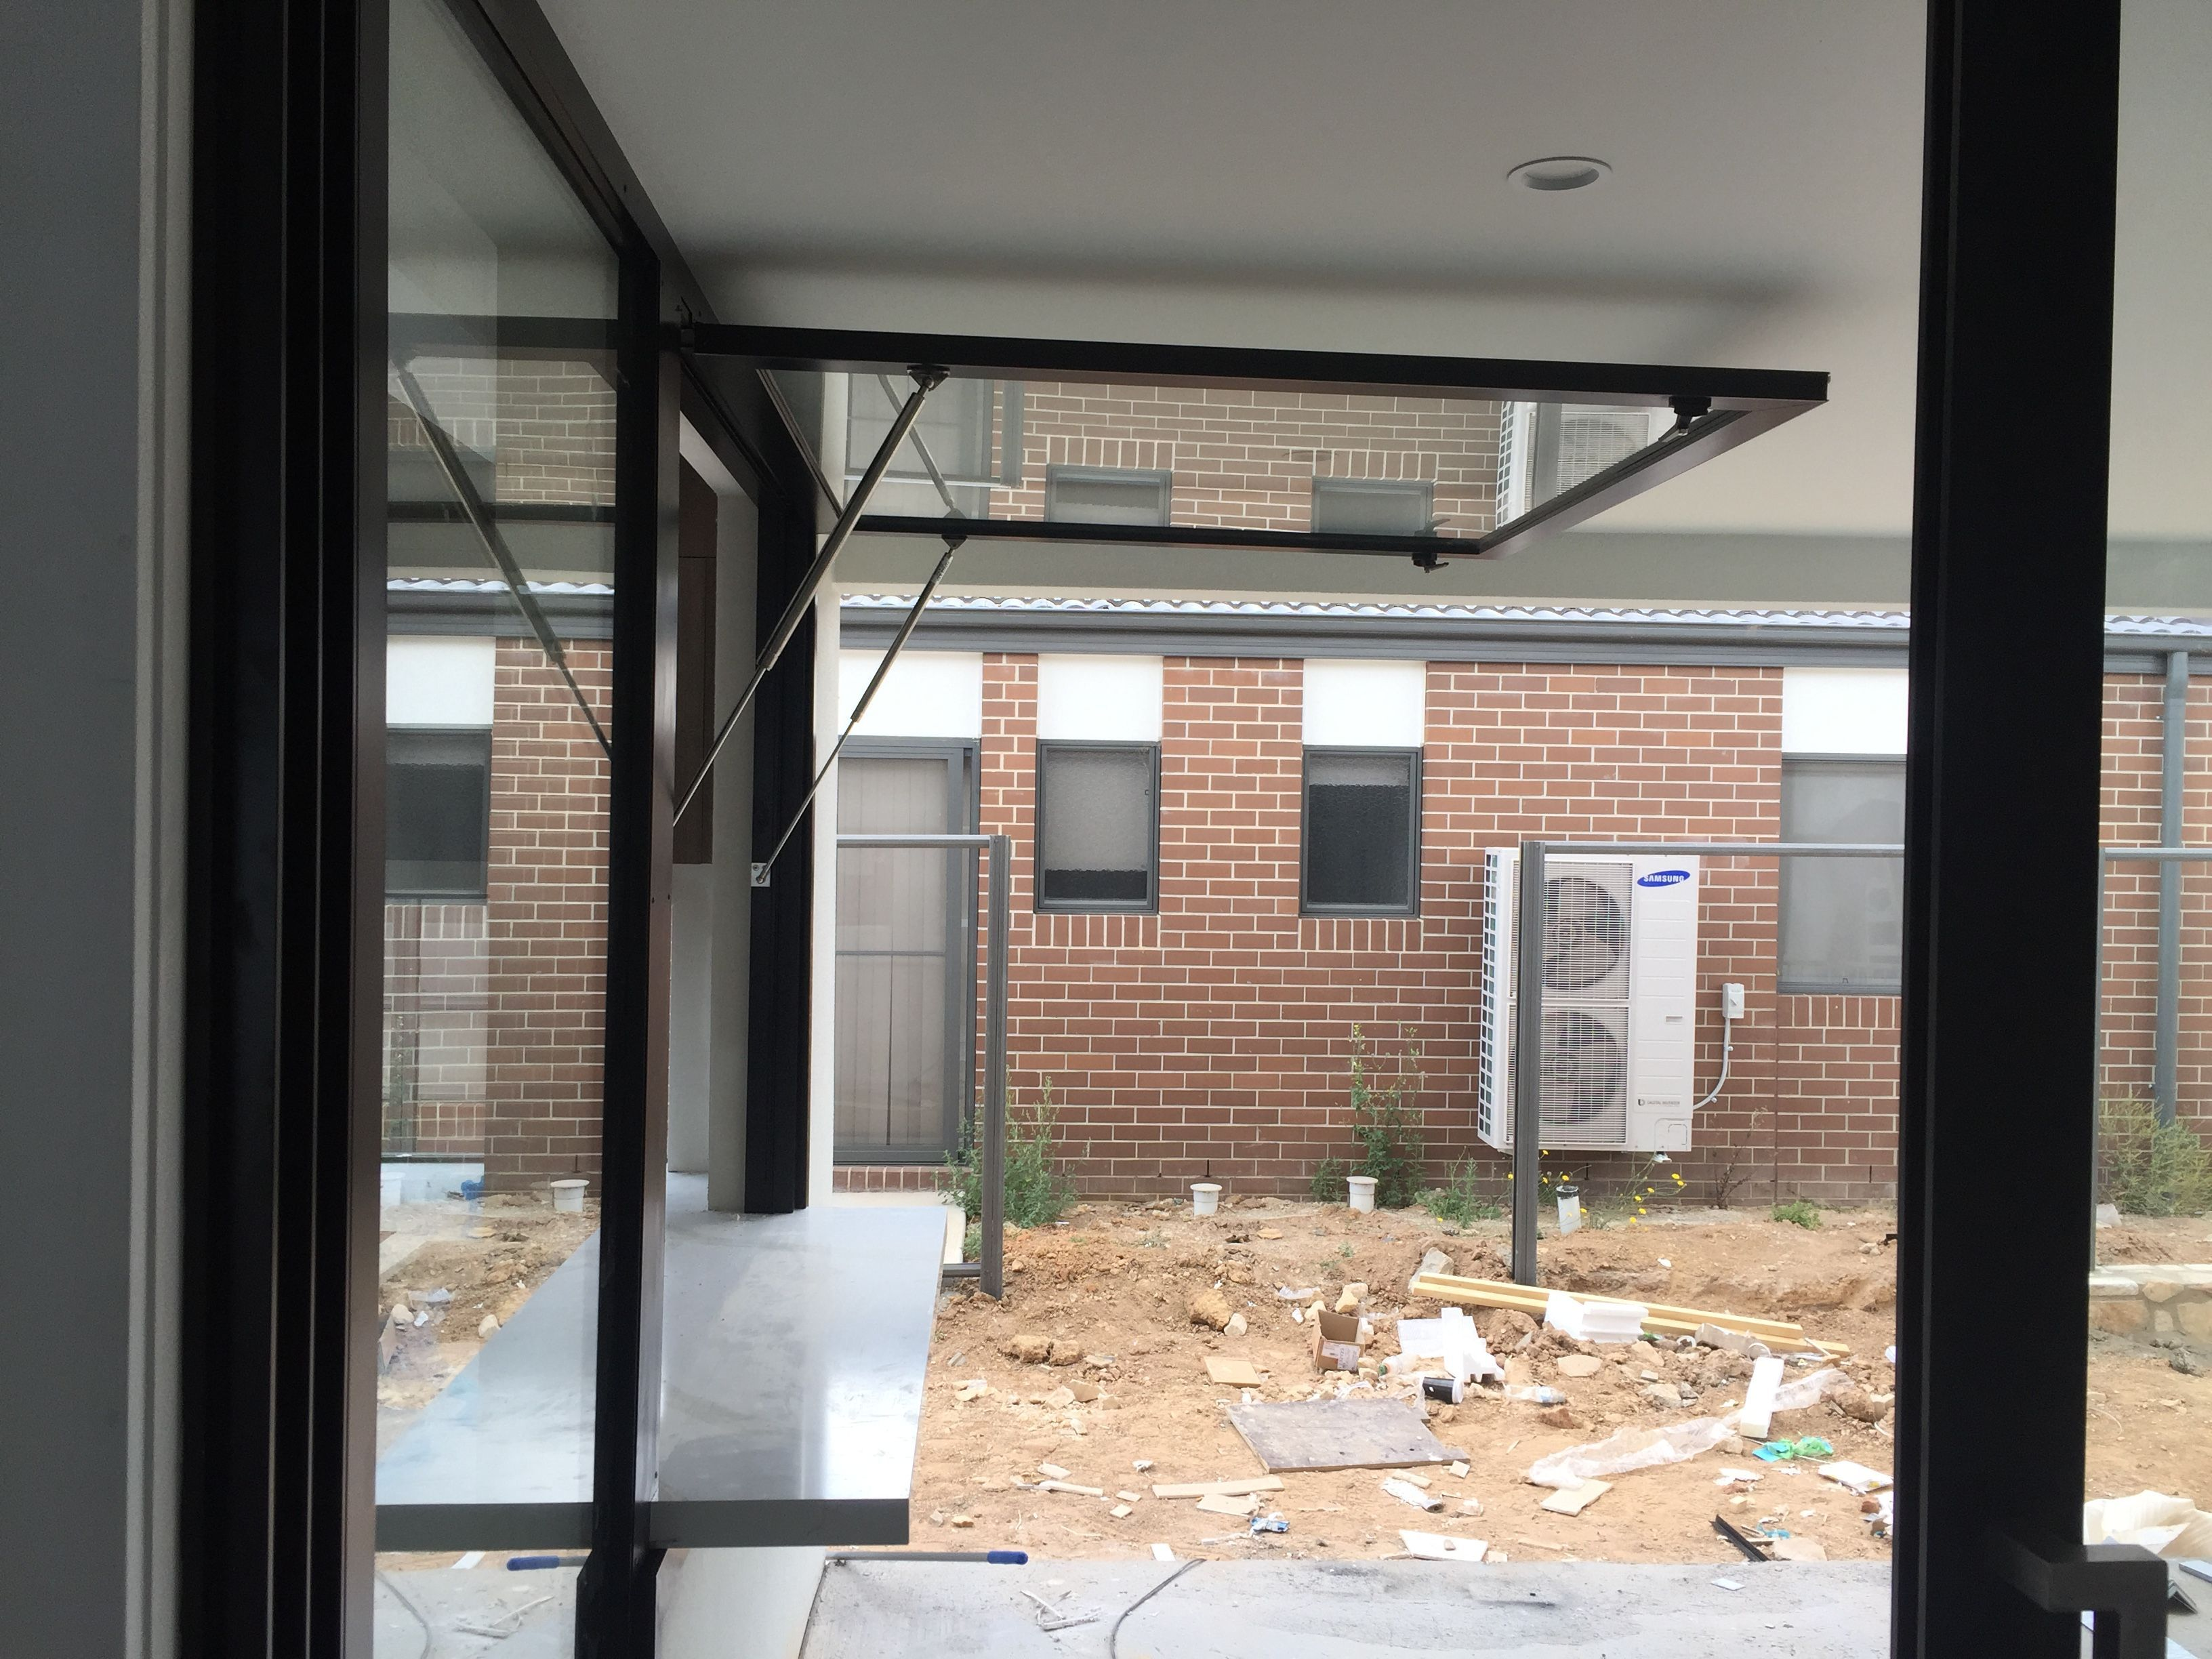 A side view of the cga gas strutted awning window for Pictures of awning windows